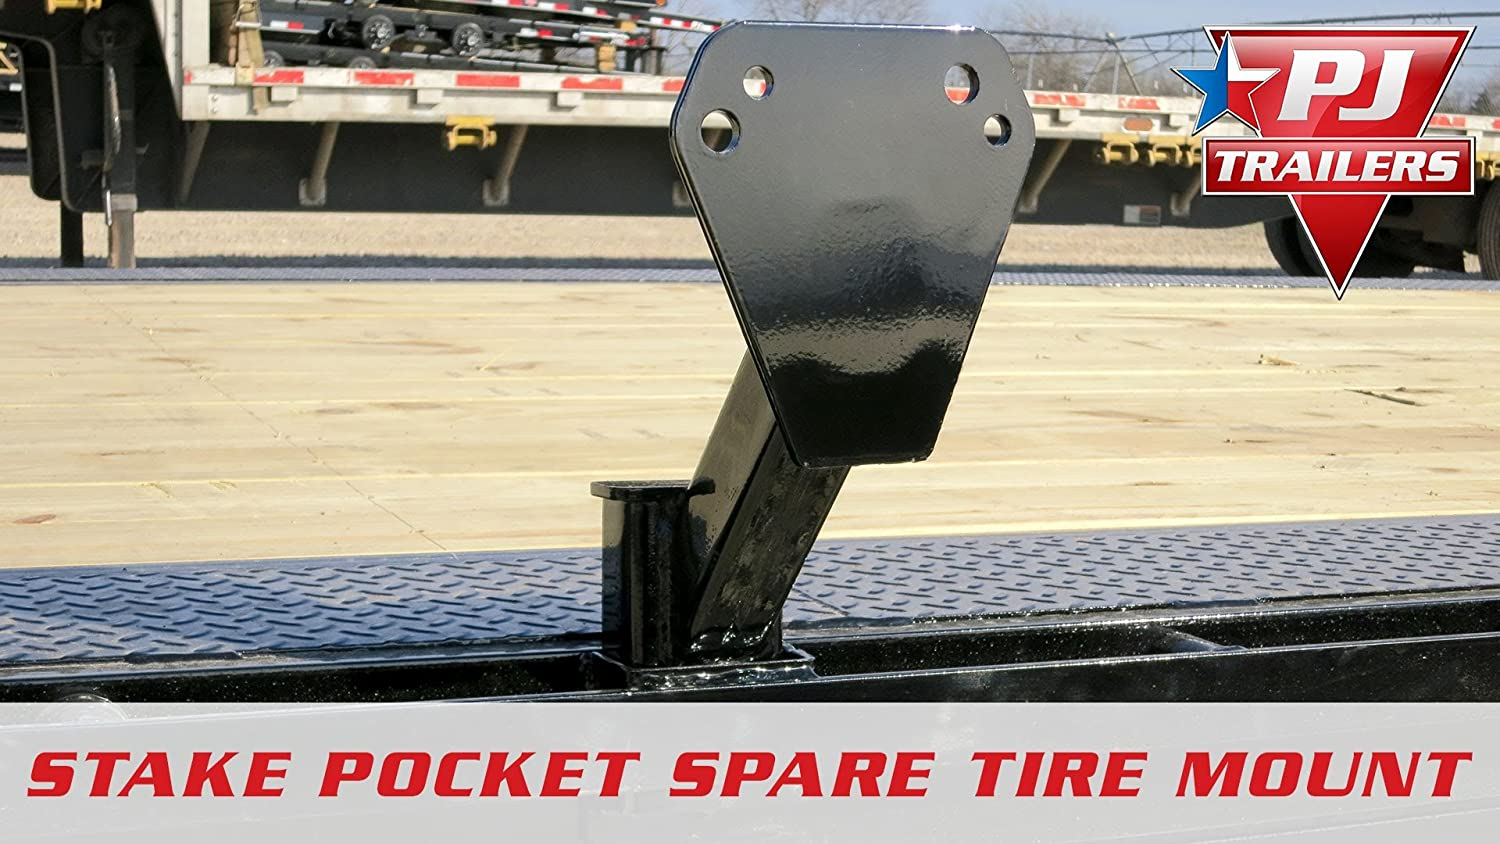 Stake Pocket Spare Tire Mount PJ Trailers